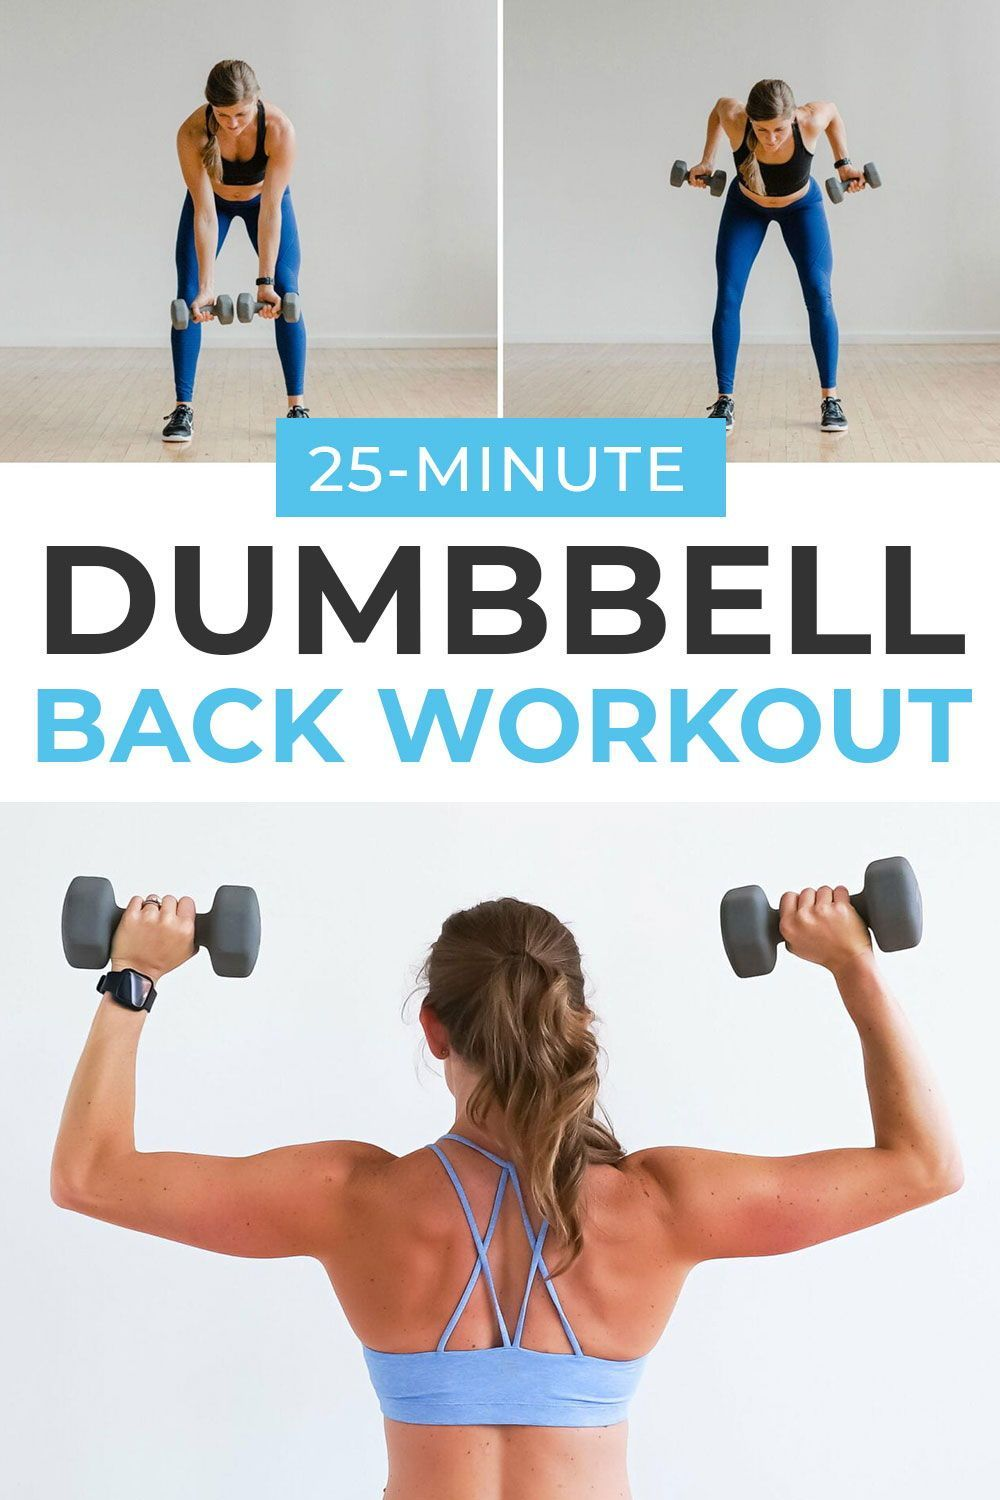 Get a strong, sculpted back with this guided BACK WORKOUT FOR WOMEN! All you need is a set of dumbbells! Follow along with personal trainer Lindsey through 8 of the best back exercises you can do at home! #backworkoutsforwomen #backworkout #backexercises